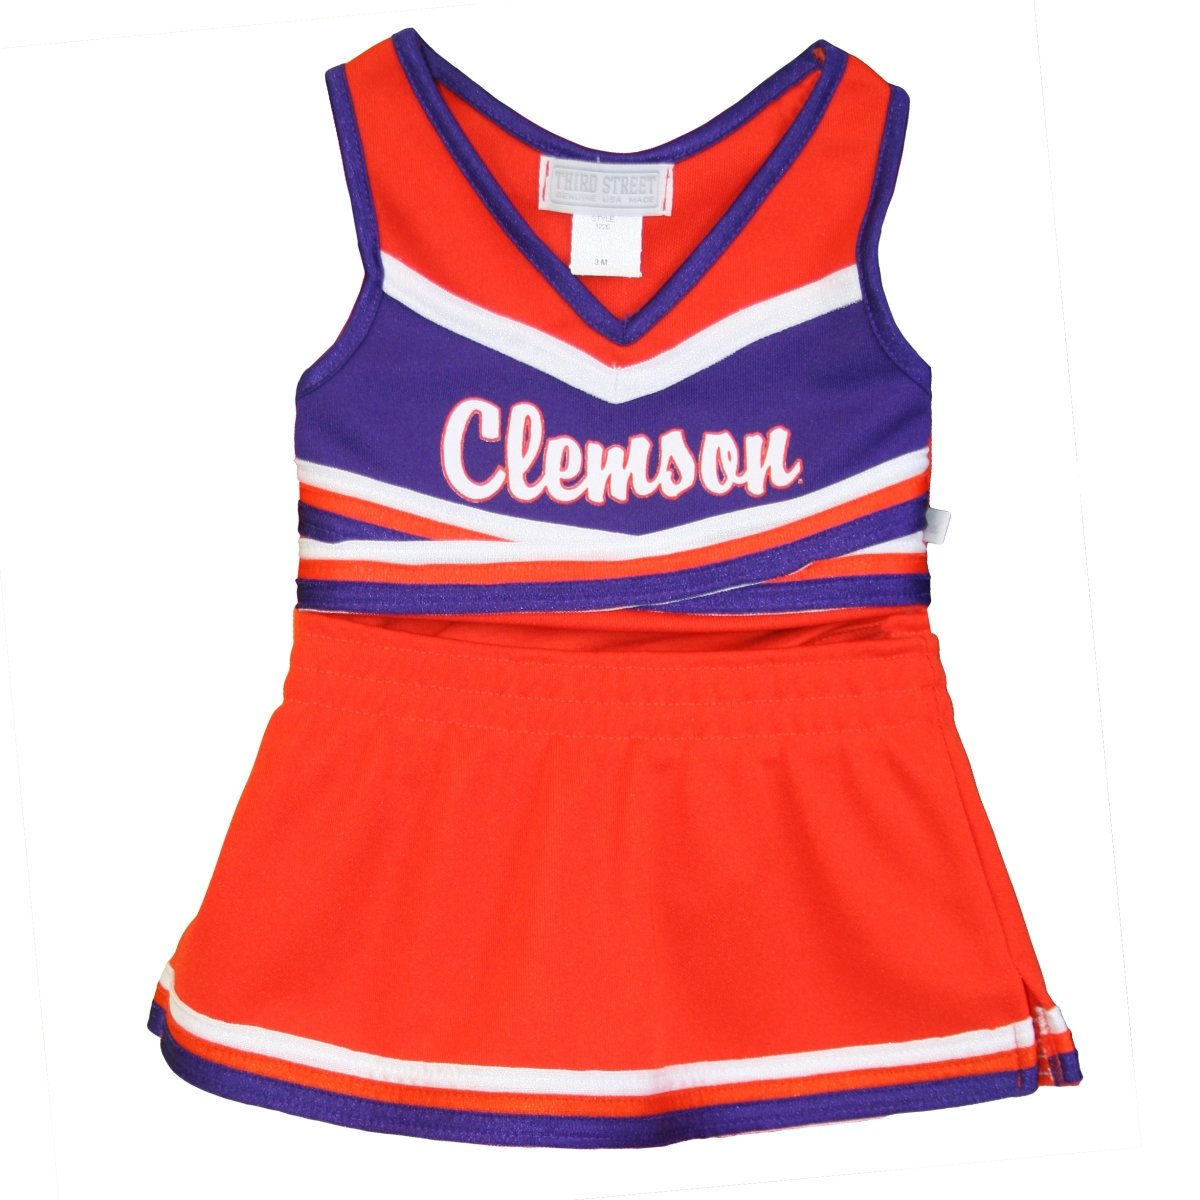 Clemson University 2 Piece Infant Cheerleading with Script - Mr. Knickerbocker